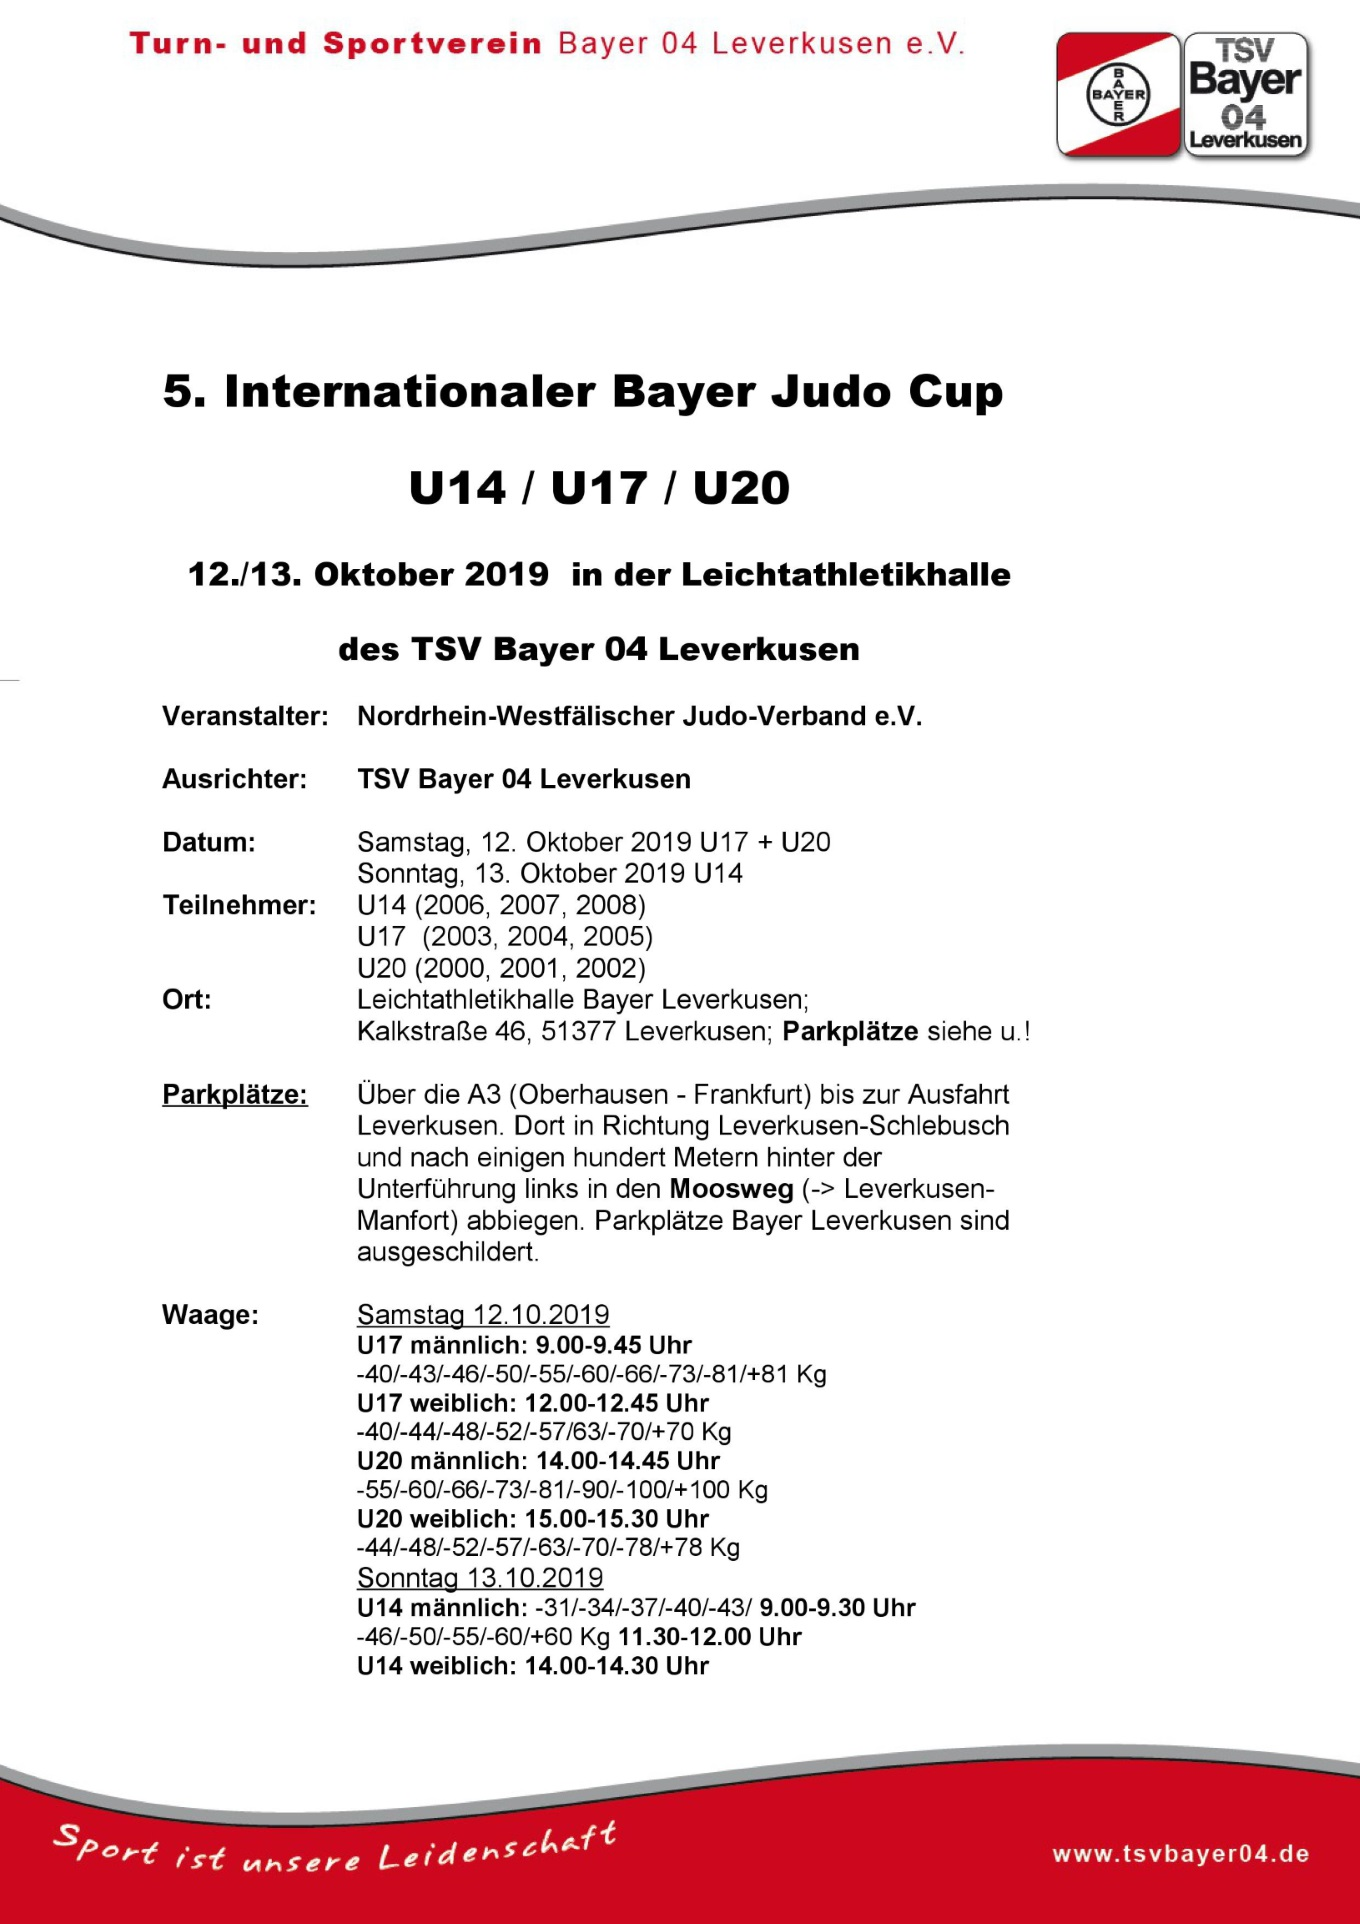 5. Internationaler Bayer Cup 2019